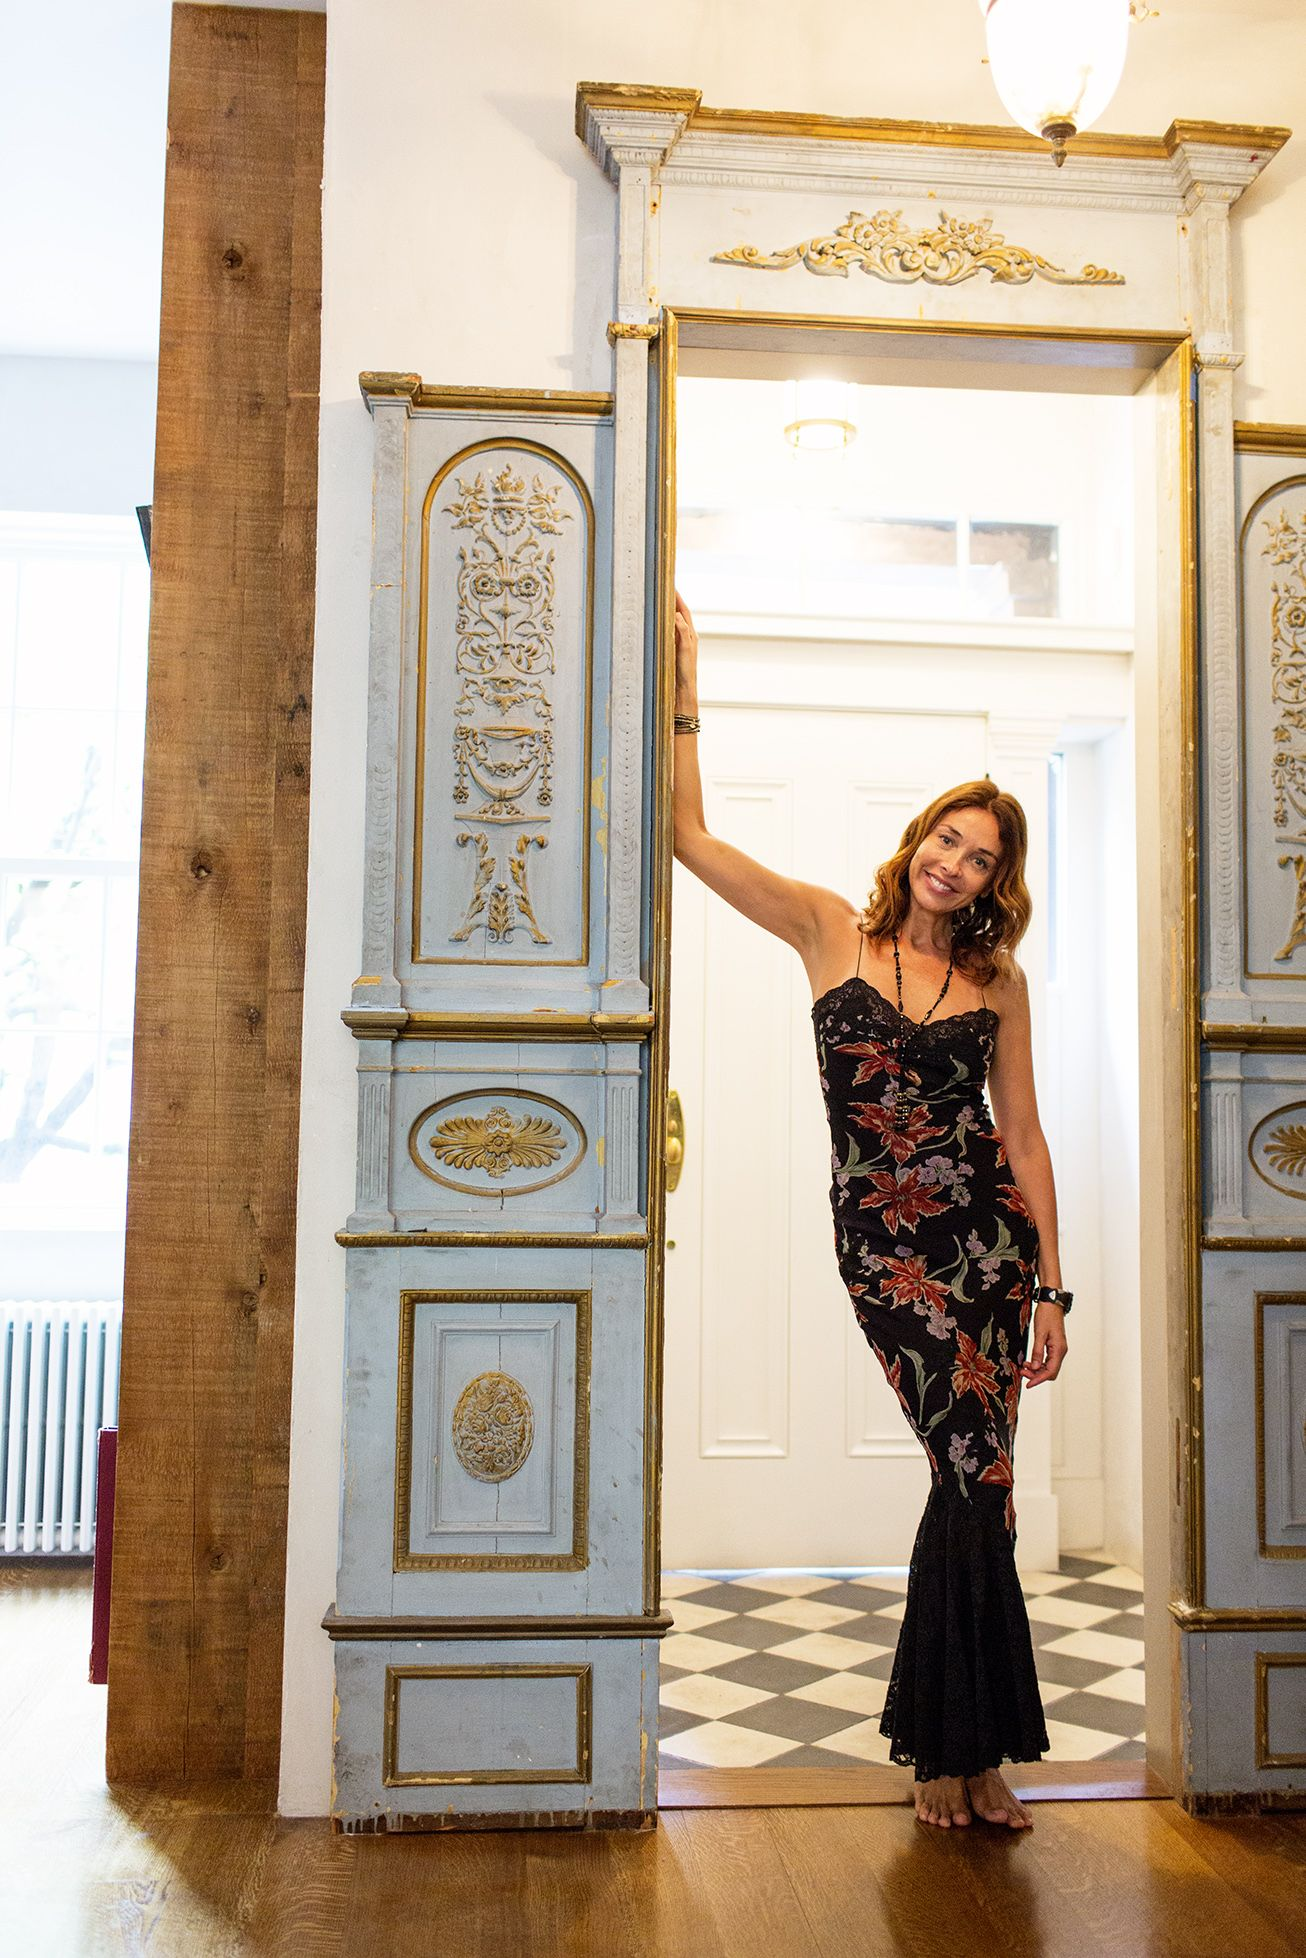 Olatz Schnabel U2013 Designer At Home In New York City « The Selby Antique Door  Frame